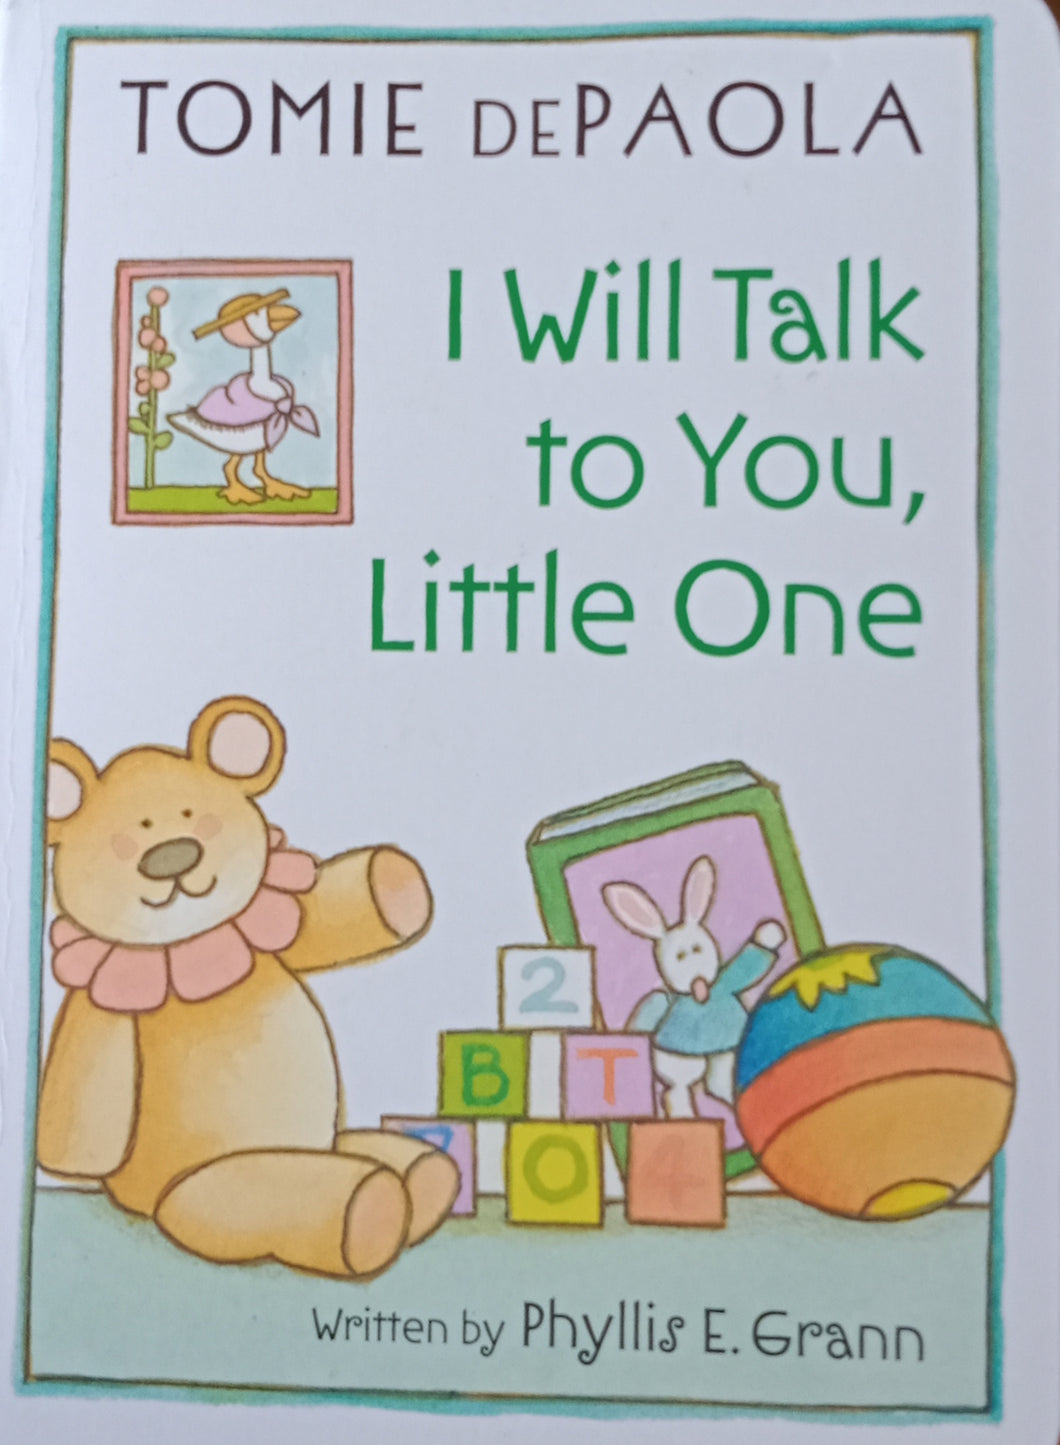 I Will Talk To You Little One by Phyllis Grann